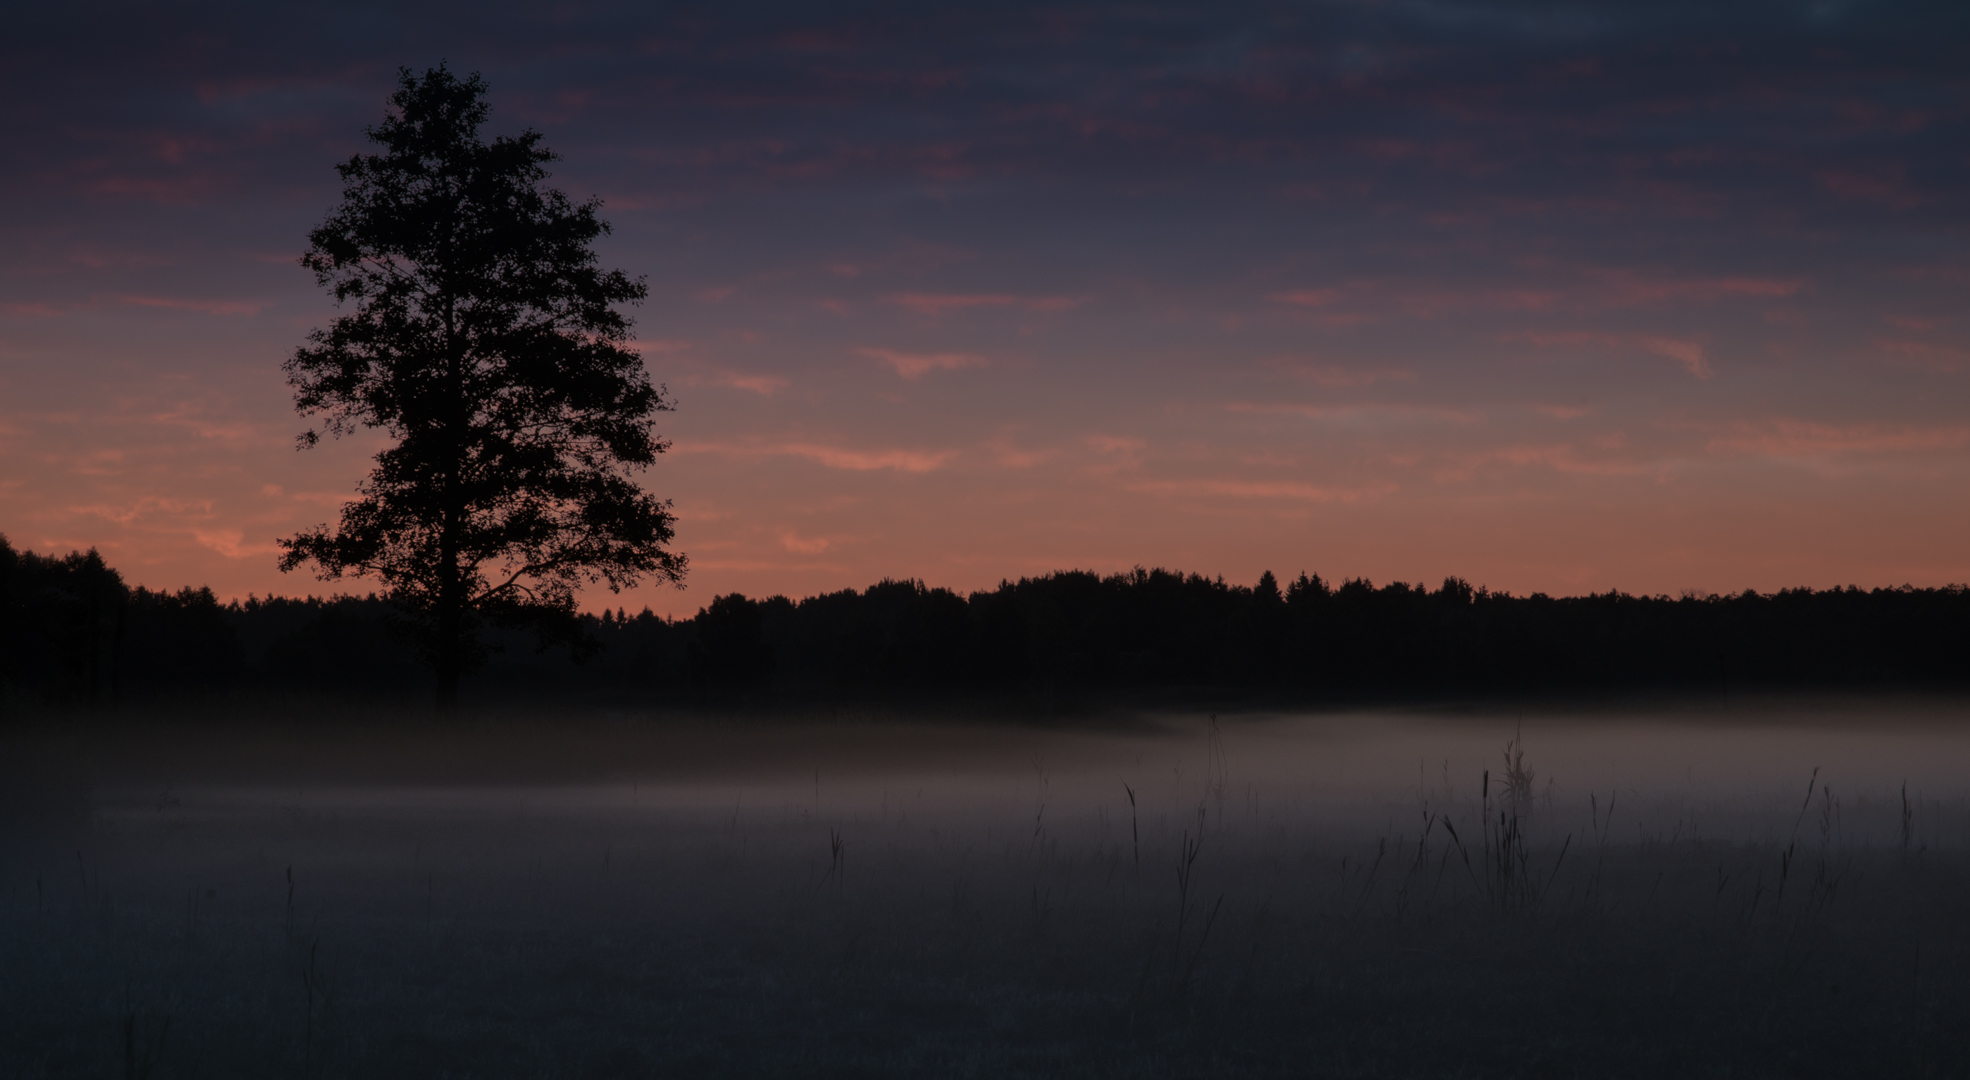 Sunset and fog in Białowieza